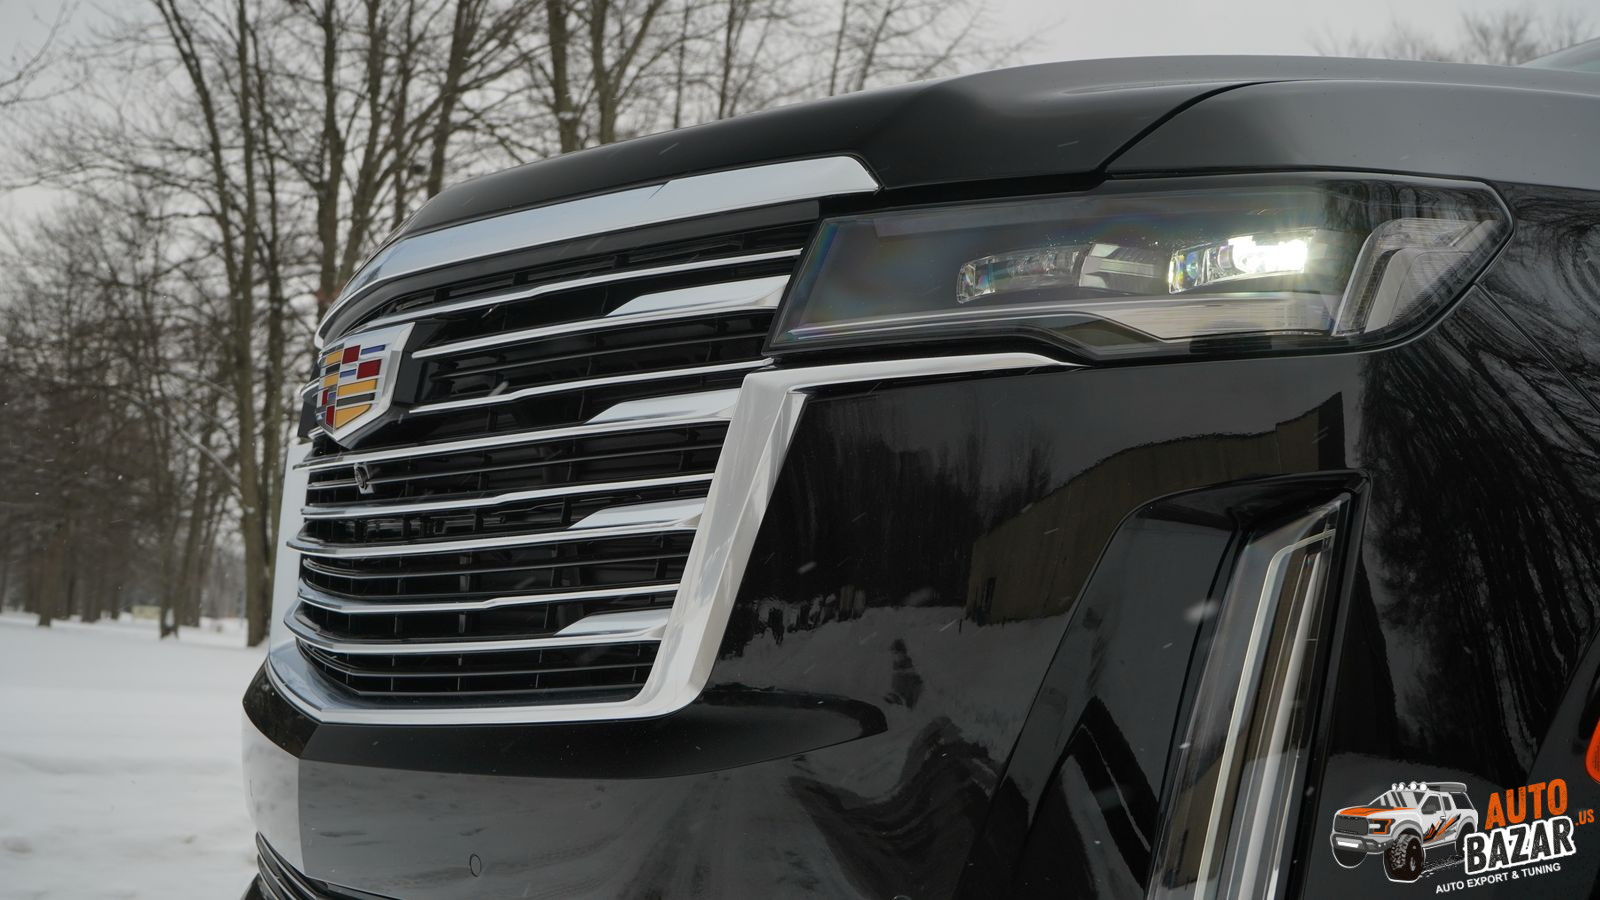 /storage/inventories/1103/2021 Cadillac Escalade 1103 (80).JPG